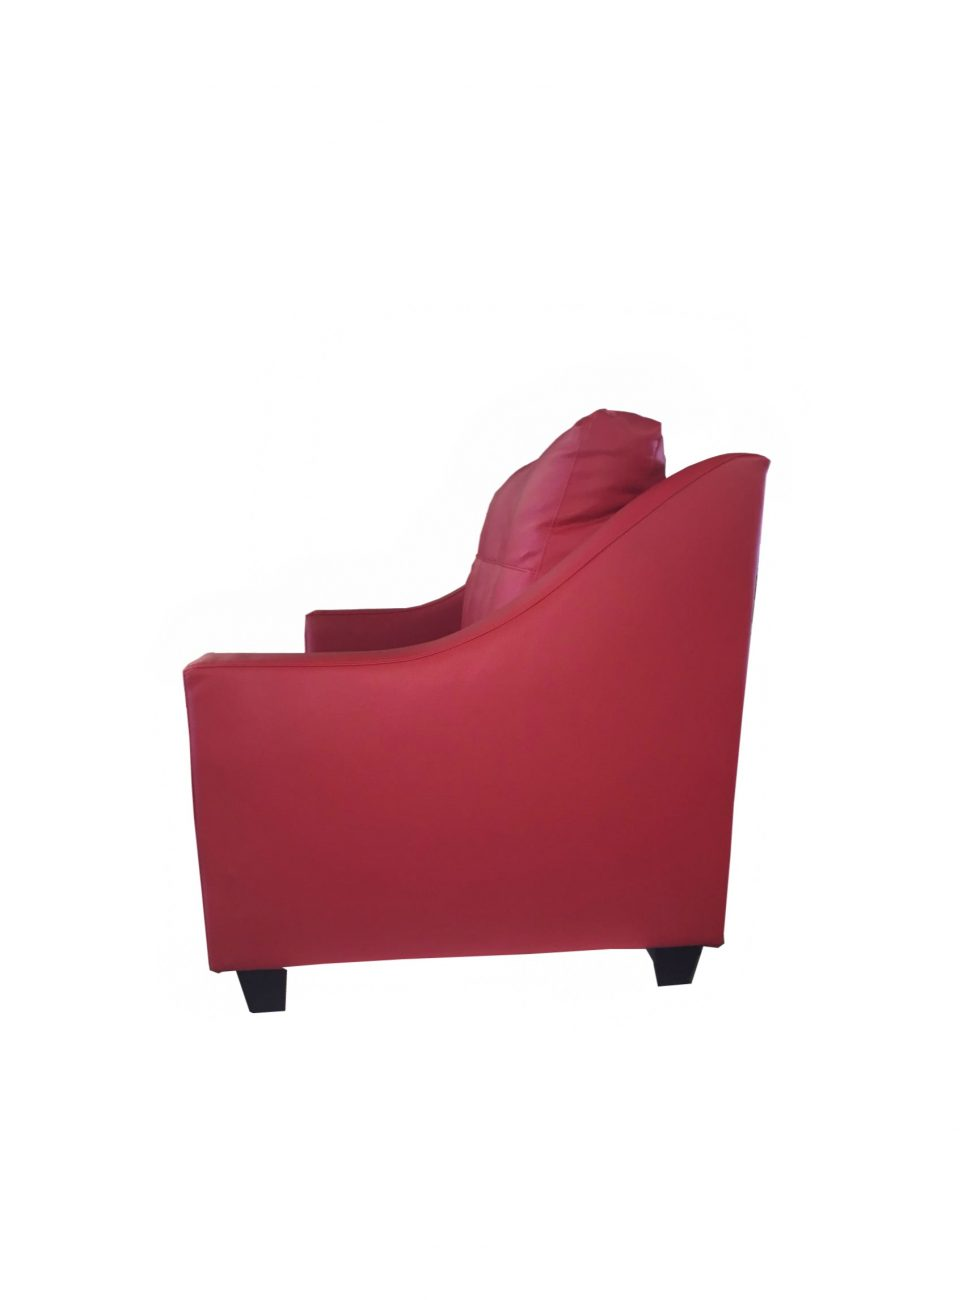 Loveseat Red 2